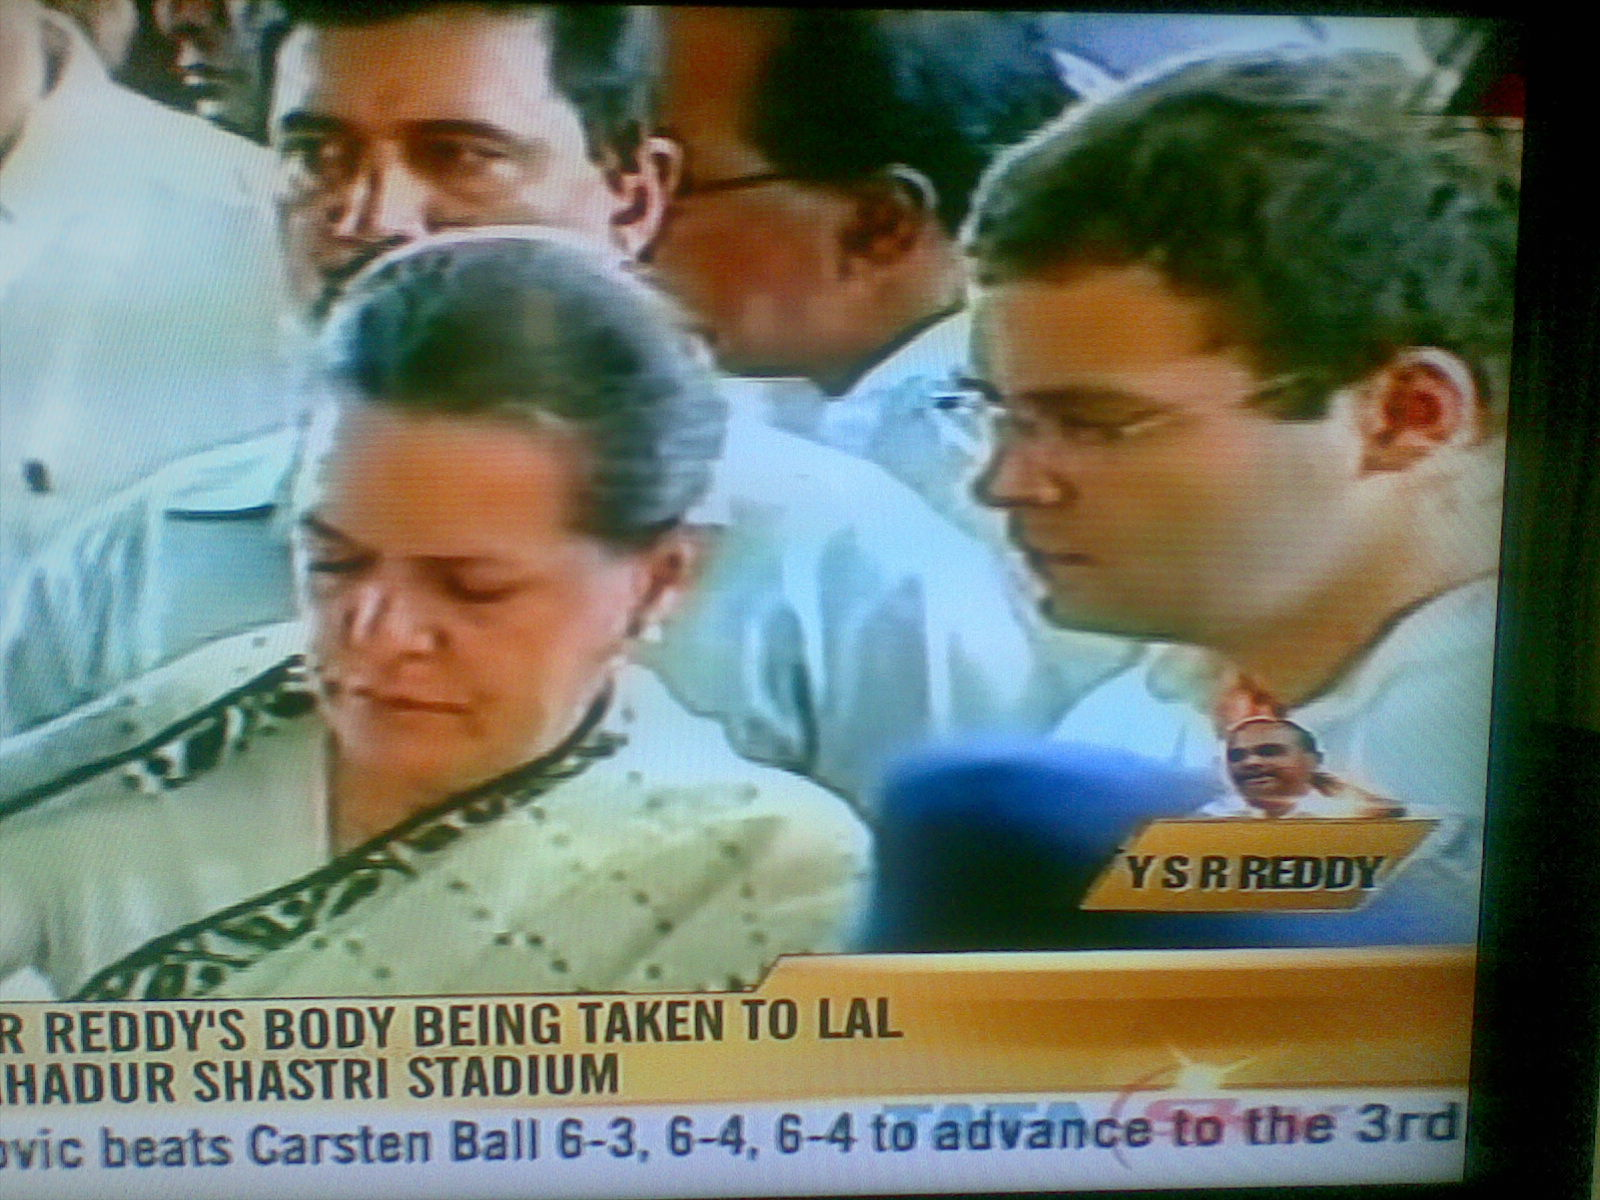 Grief on Faces and with Great Respect and sence of loss of YSR, Sonia Gandhi and Rahul Gandhi Paying Homage to the Departed Soul of YSR in Hyderabad Today 4th Sept 2009